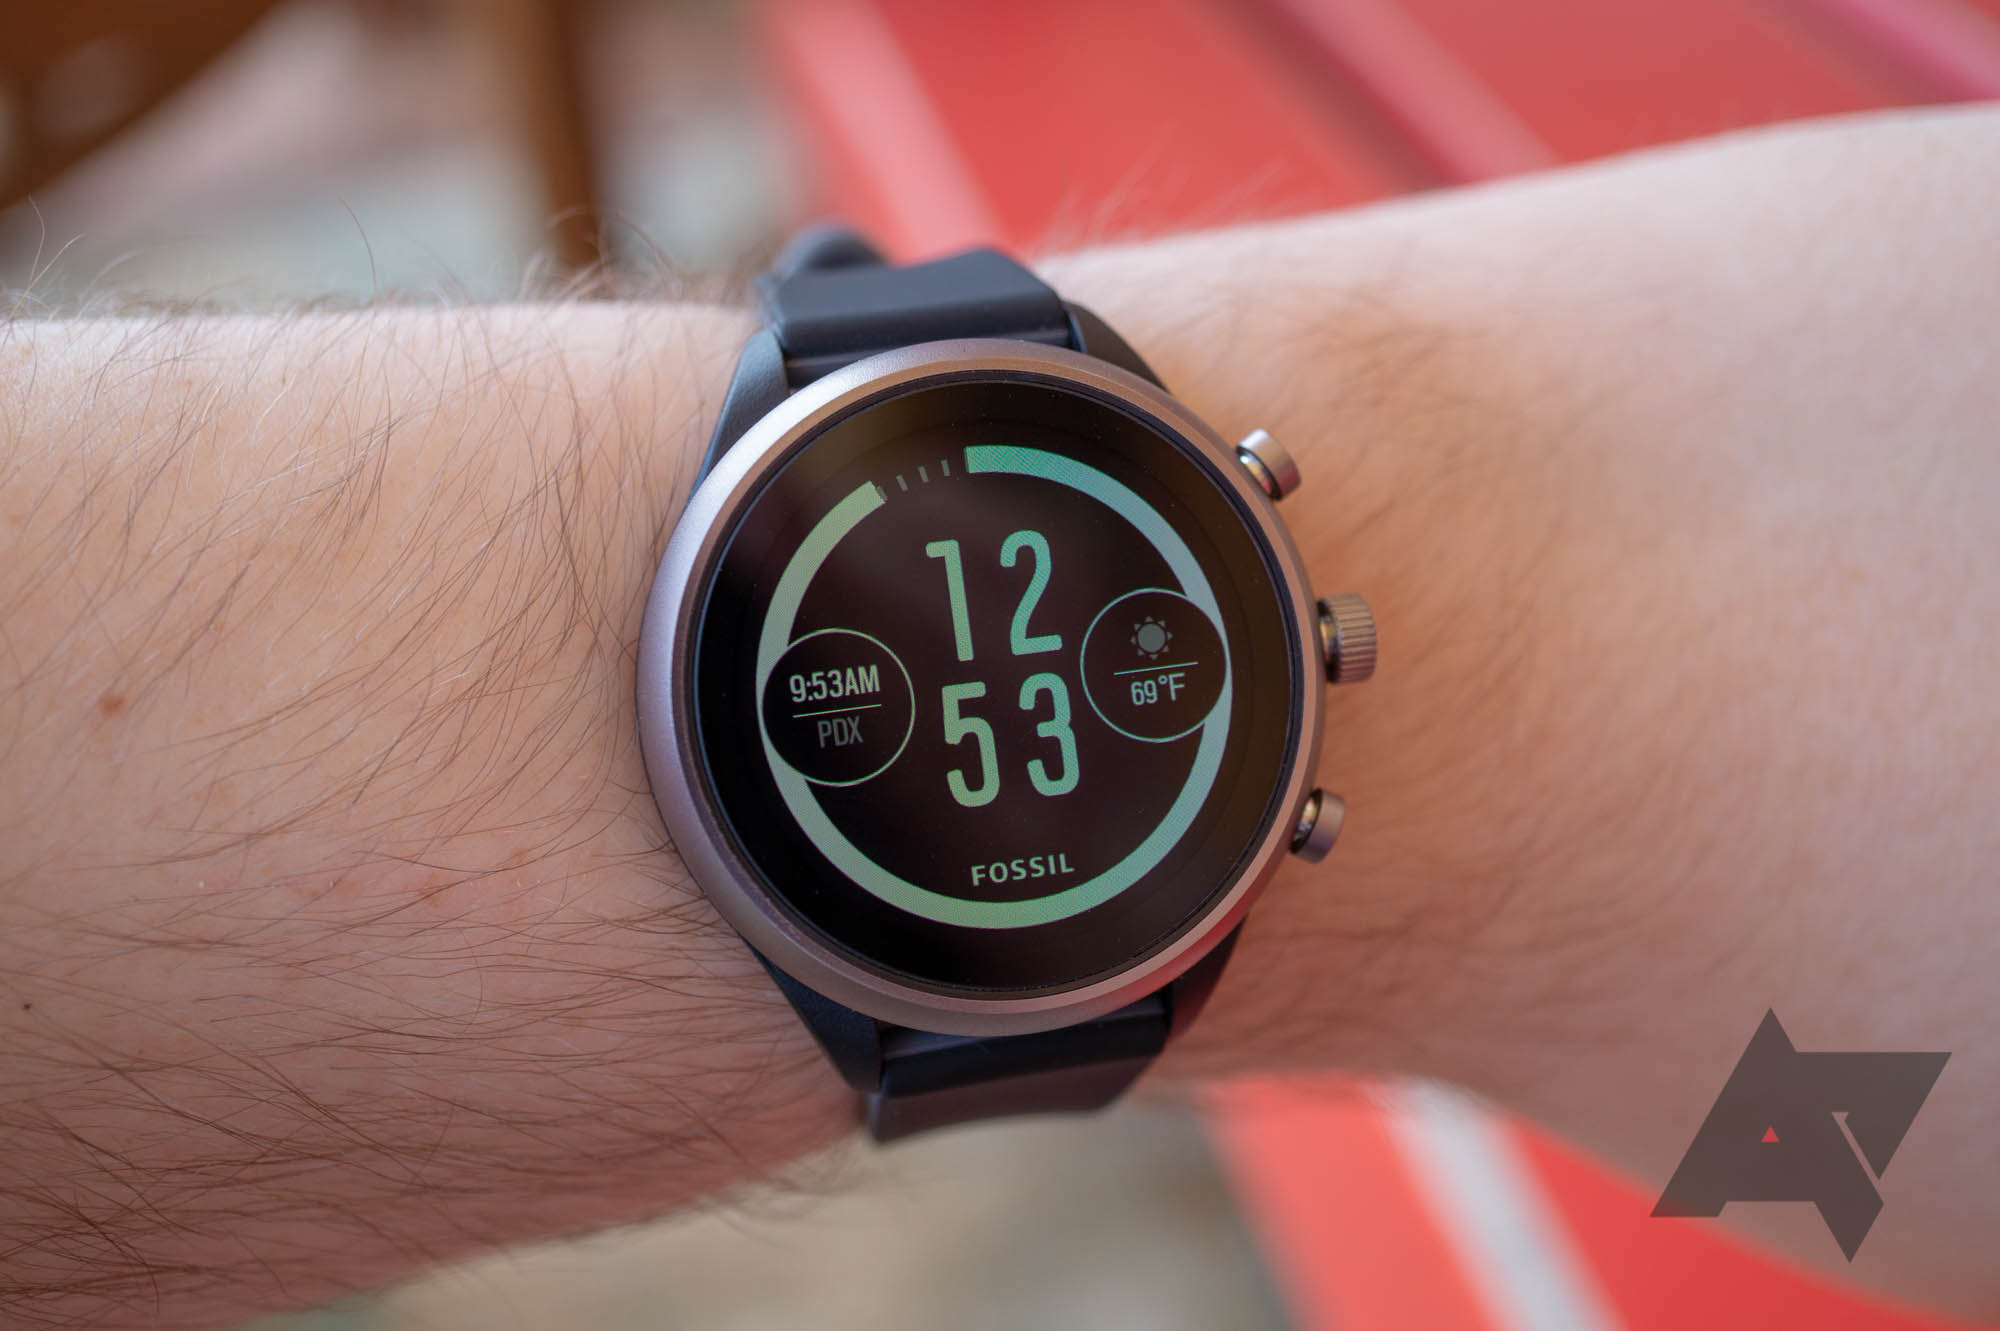 Fossil Sport review: The best Wear OS has to offer - News